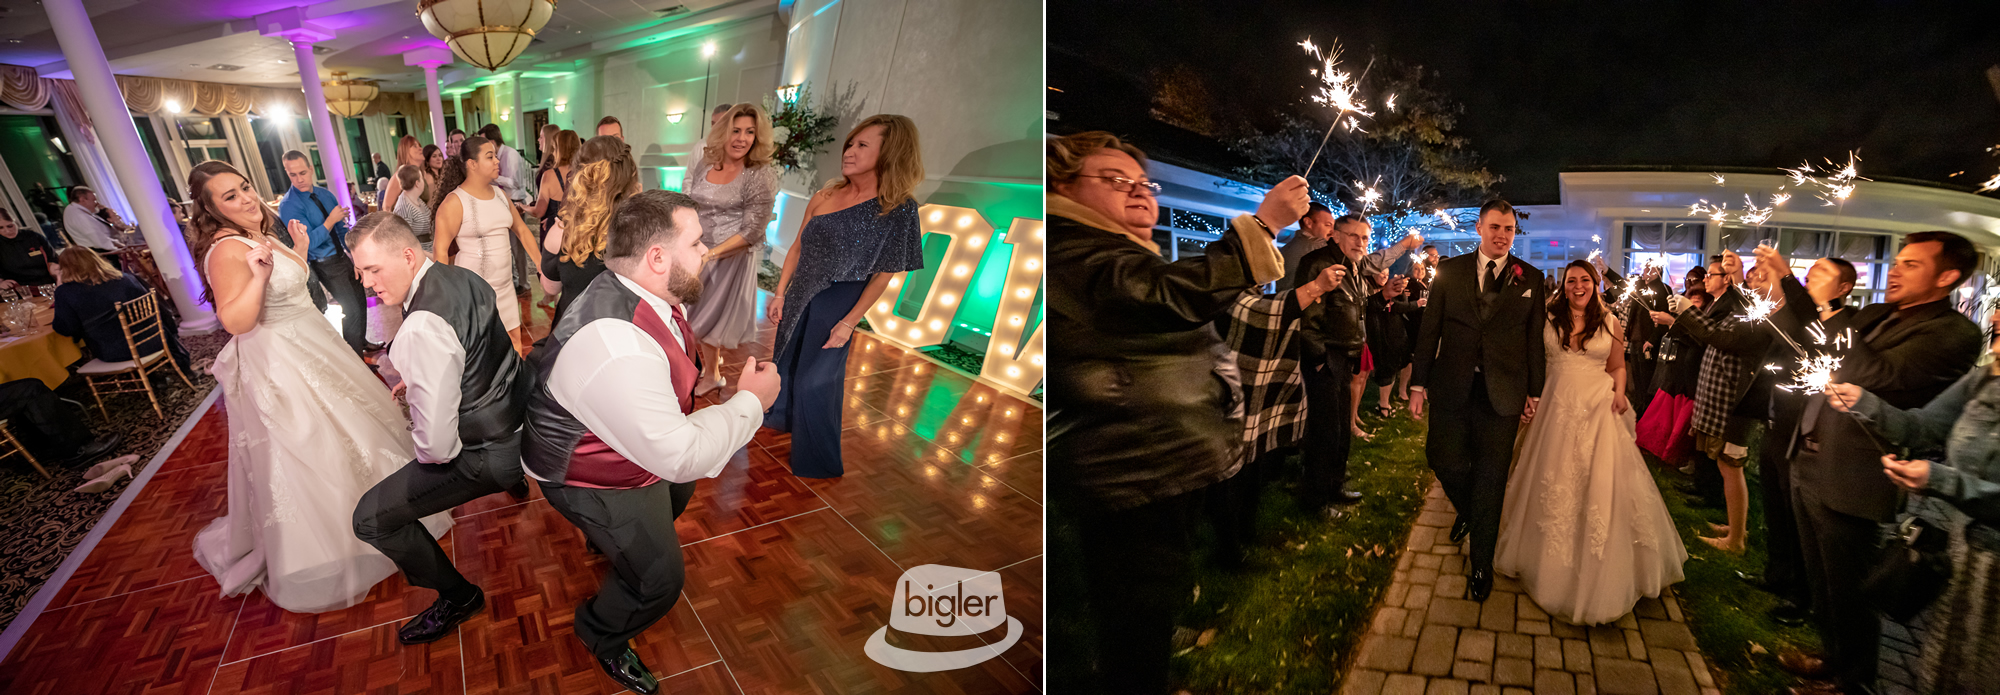 20181110_-_34_-_Amanda_and_Michael,_Albany_Country_Club,_Wedding_Photos